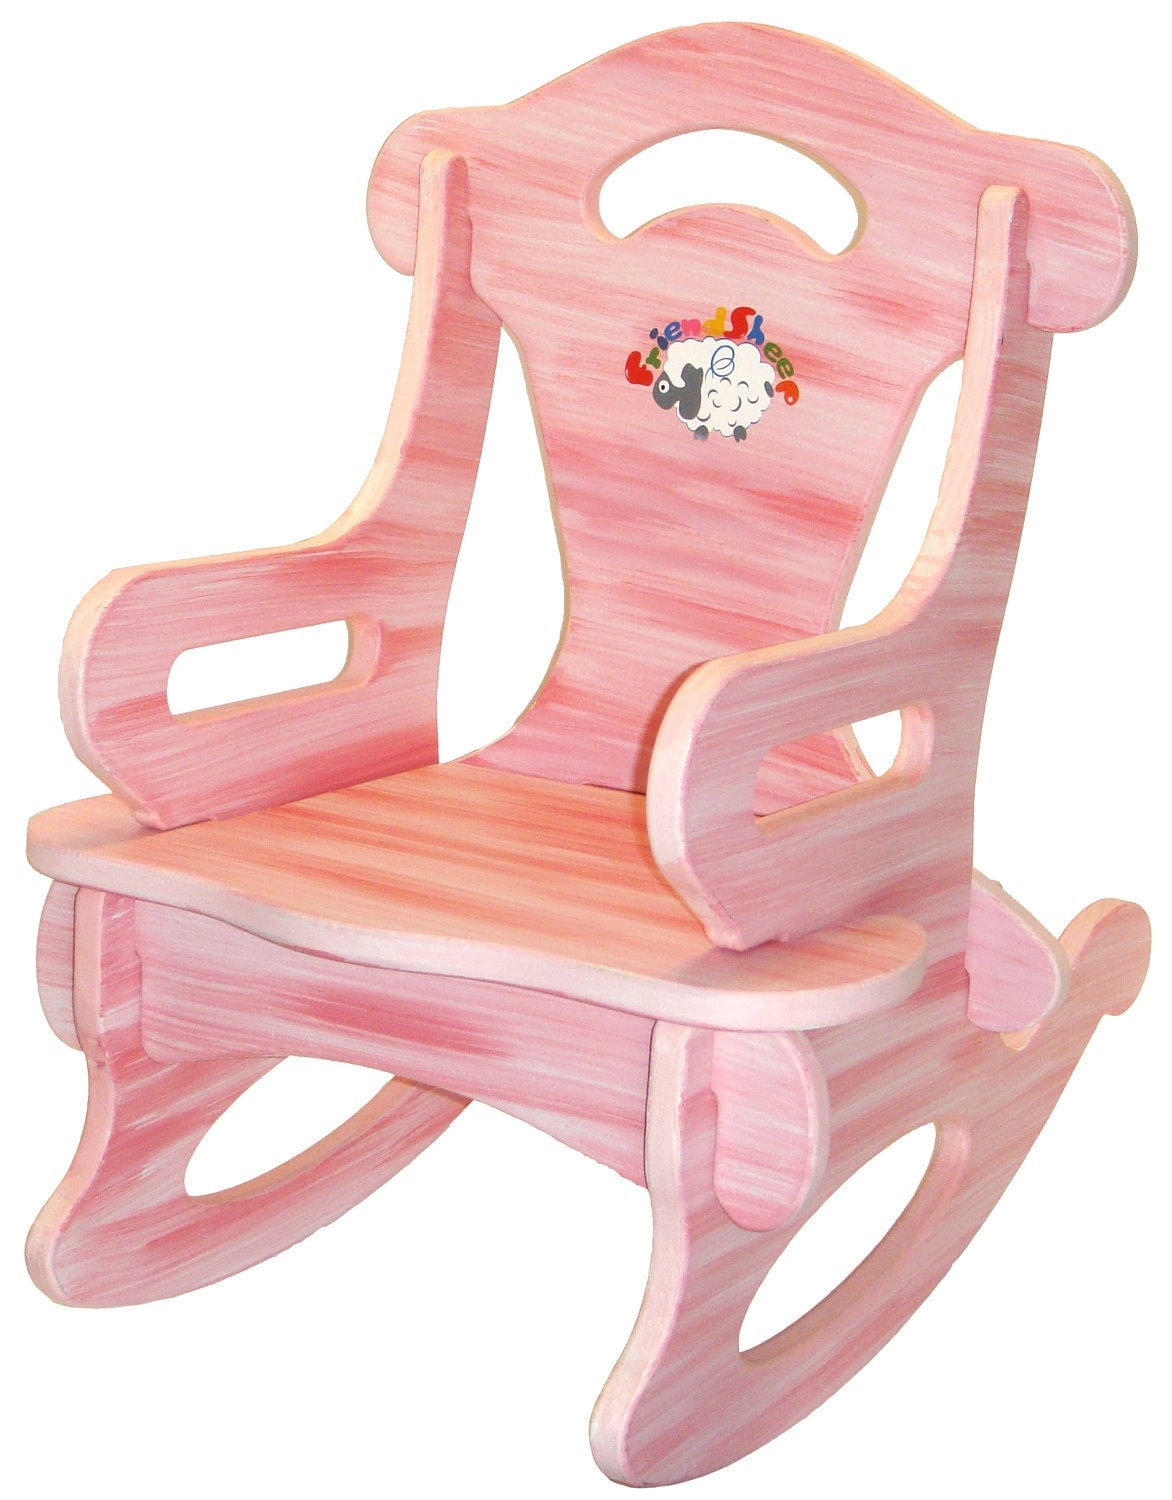 Pink Puzzle Rocker Rocking Chair Solid Wood for by dazzlecrystal